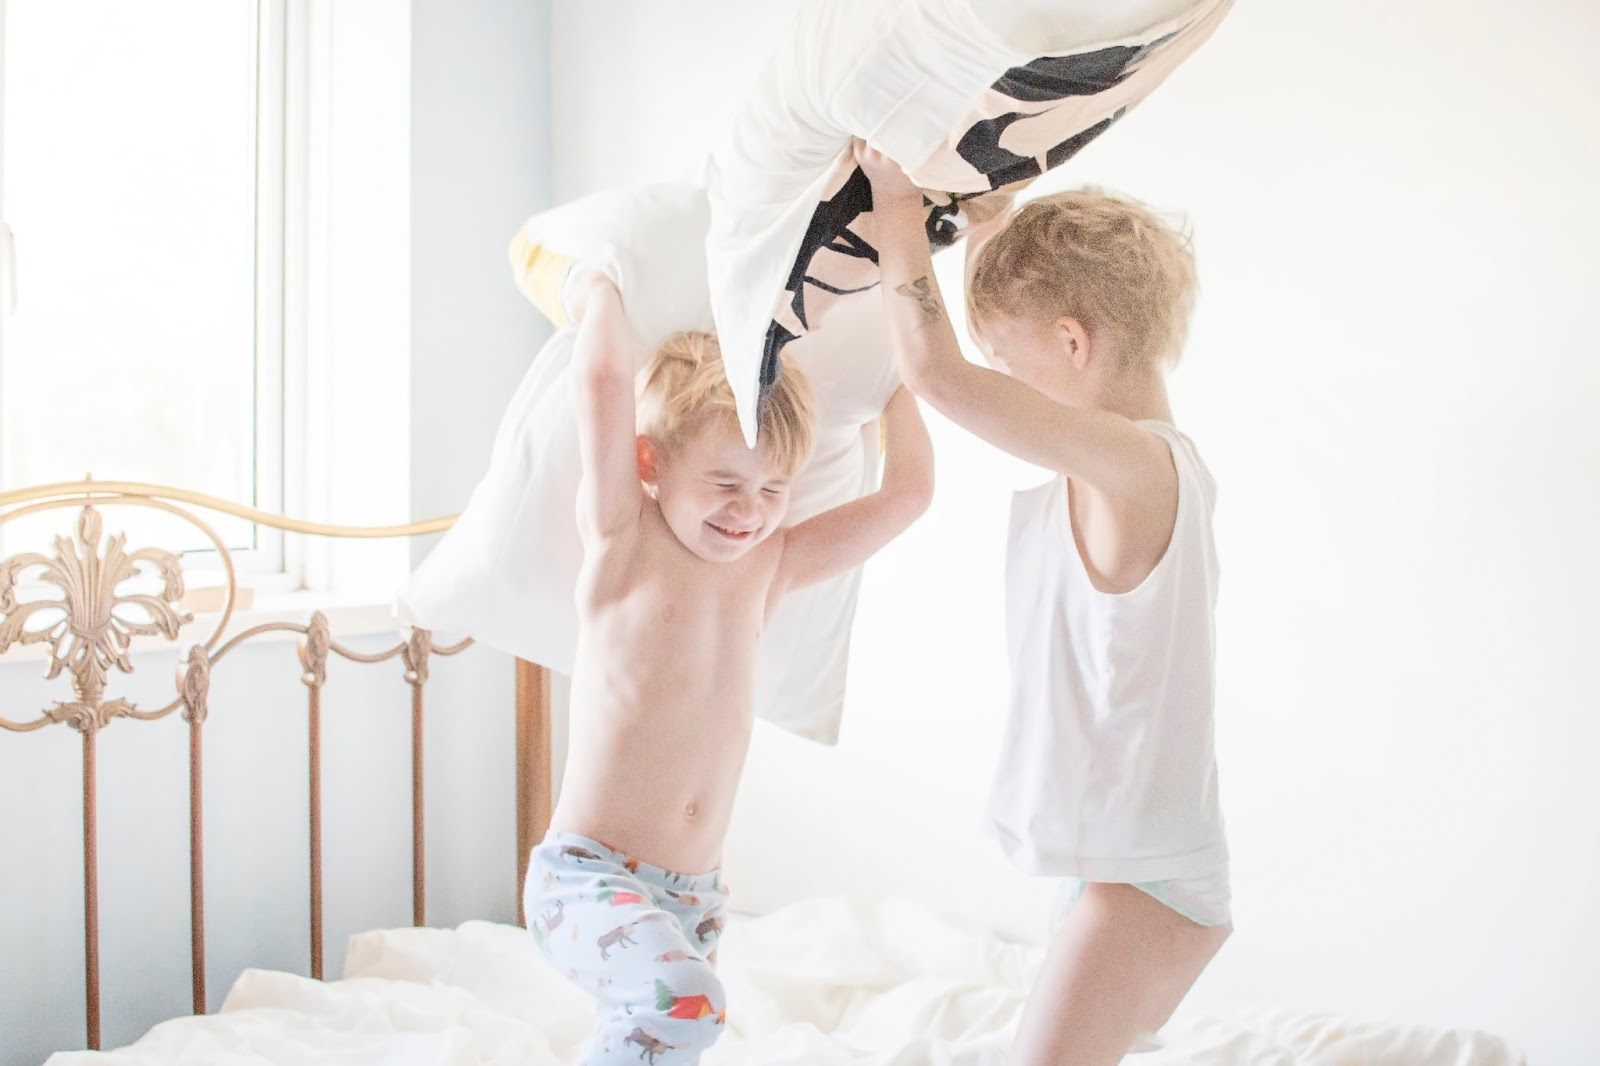 [CHATTY]PILLOW FIGHT!